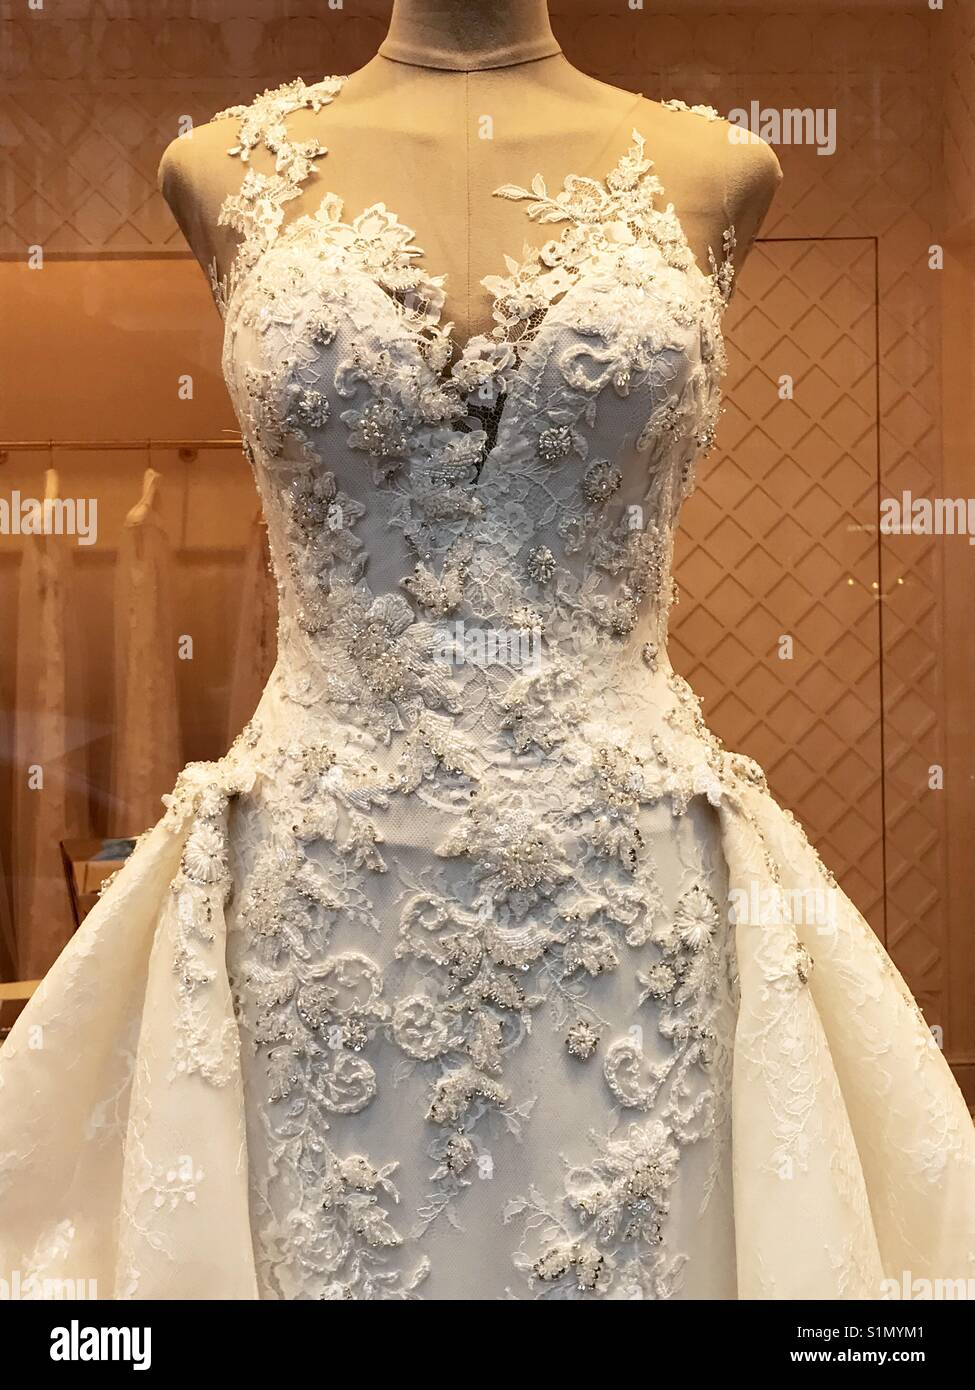 Wedding Dress In Shop Window Stock Photos & Wedding Dress In Shop ...